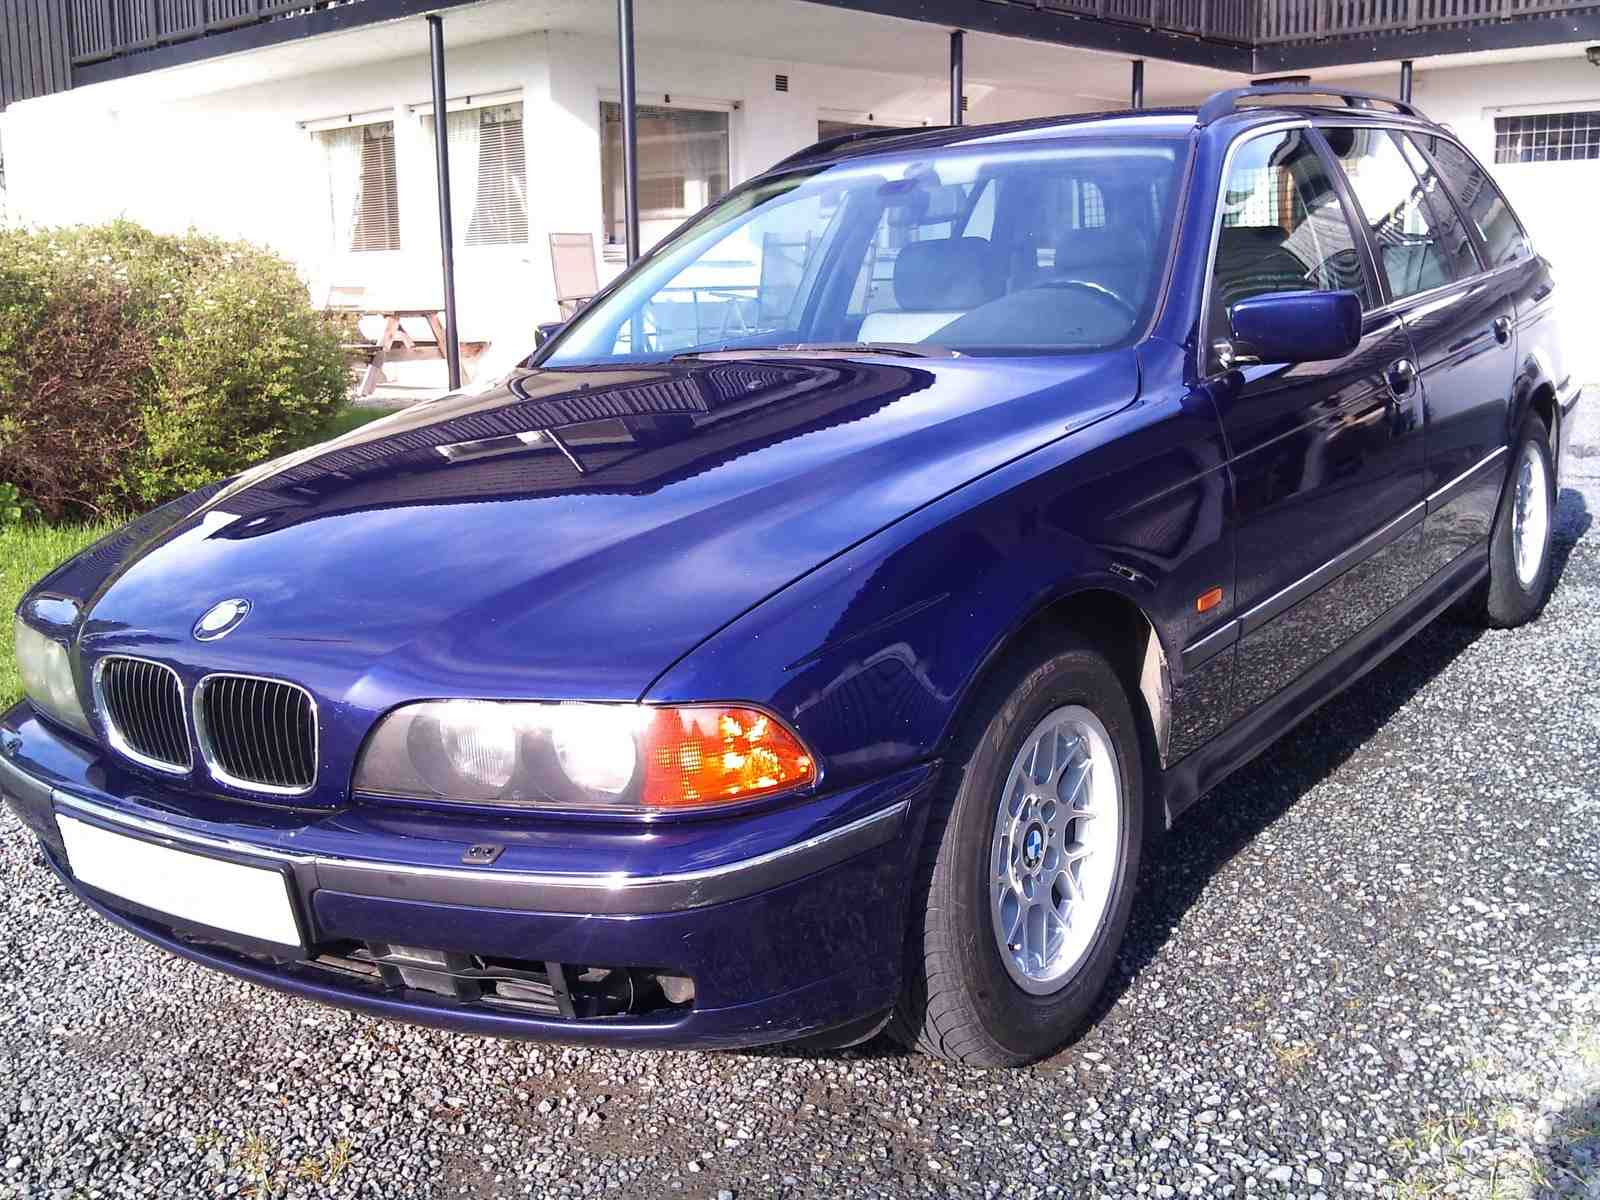 Wiring Factory Workshop Service Repair Manual Bmw 5 Series E39 1997 2002 Auto Parts And Vehicles Auto Parts Accessories